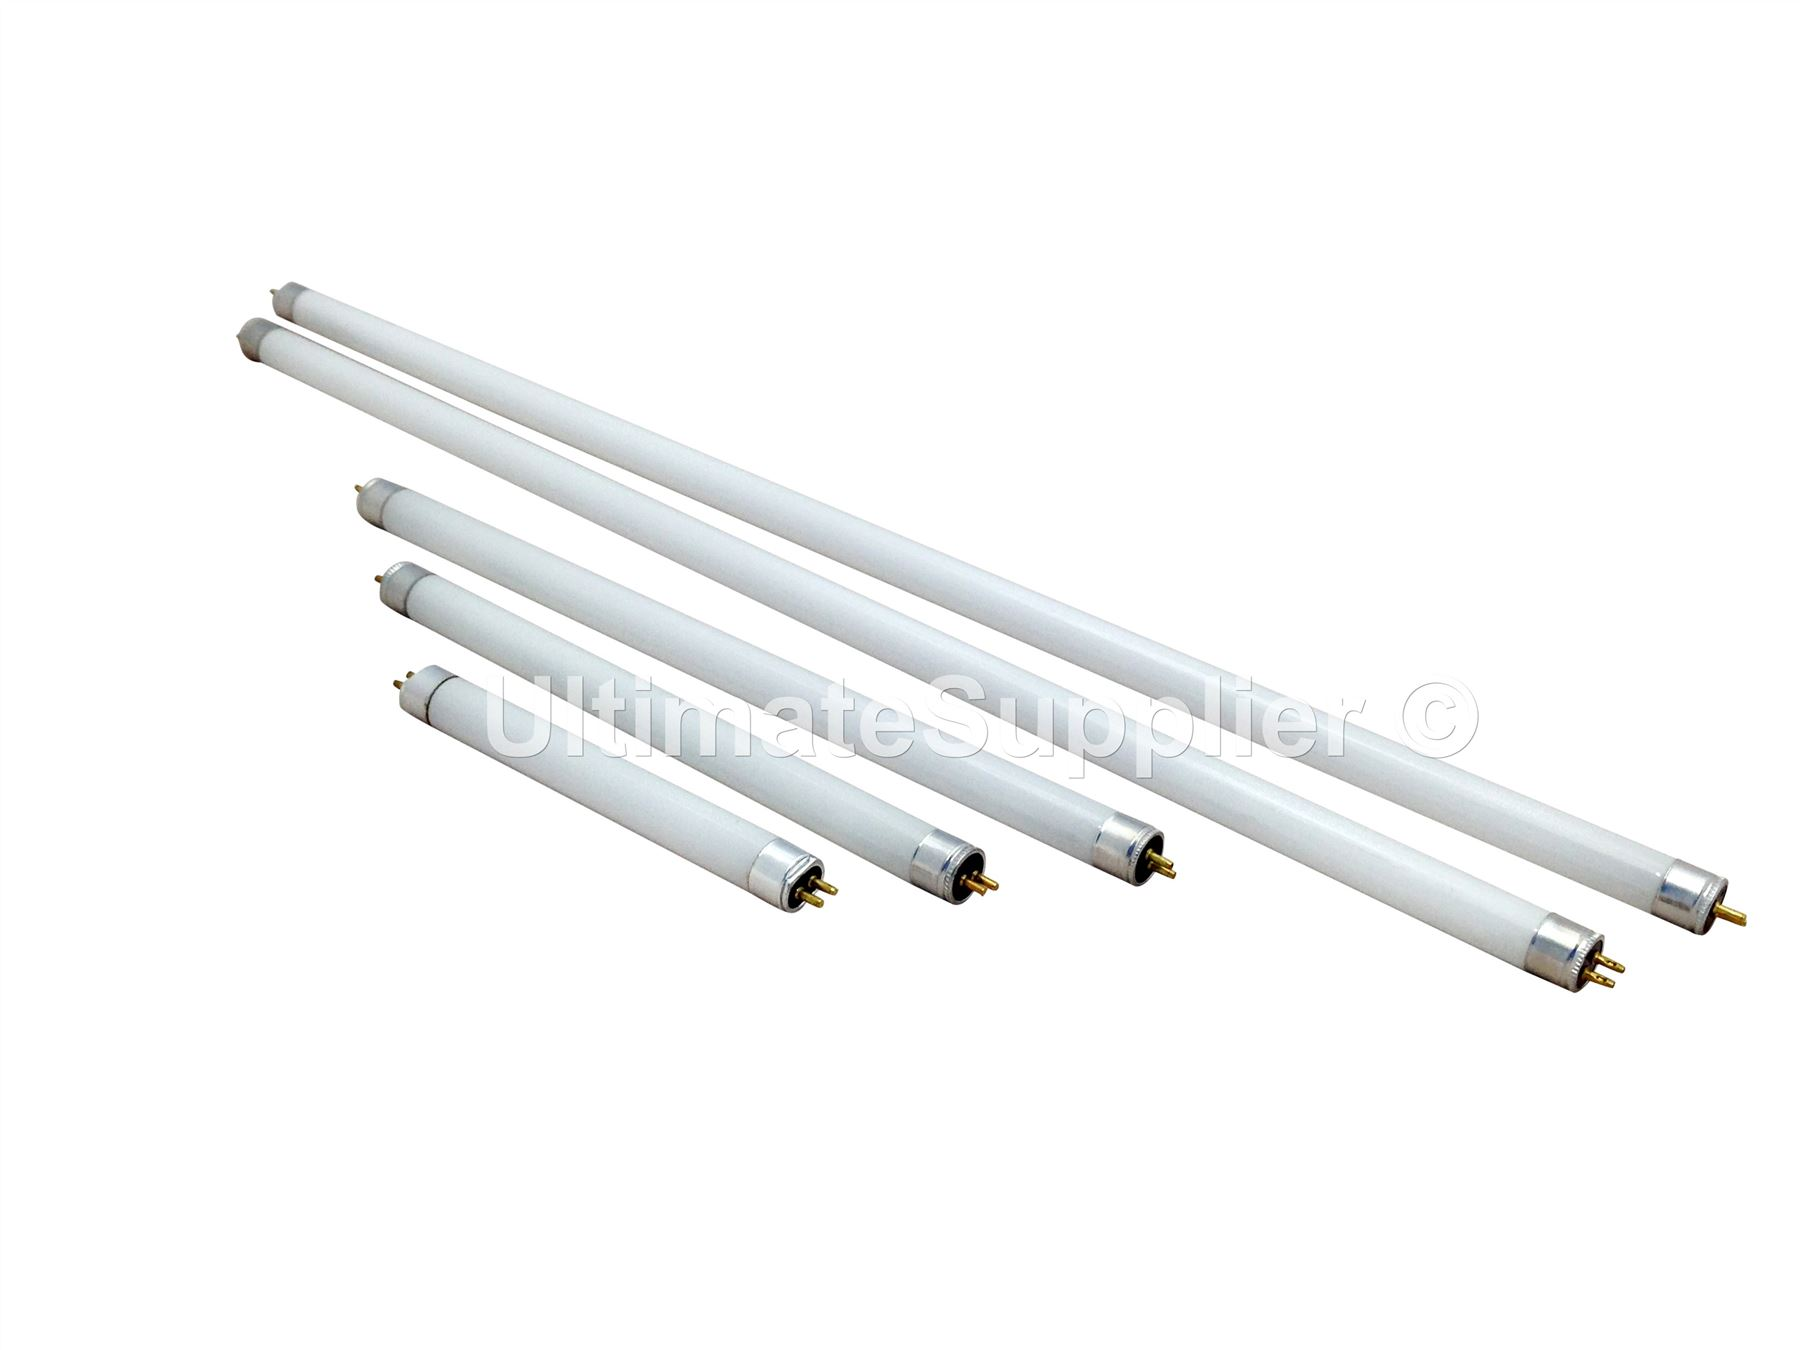 T5 fluorescent tube tubes 4w 6 6w 8w 12 13w 21 14 cool white t5 fluorescent tube tubes 4w 6 6w 8w 12 13w 21 14 cool white strip lamp bulb aloadofball Gallery